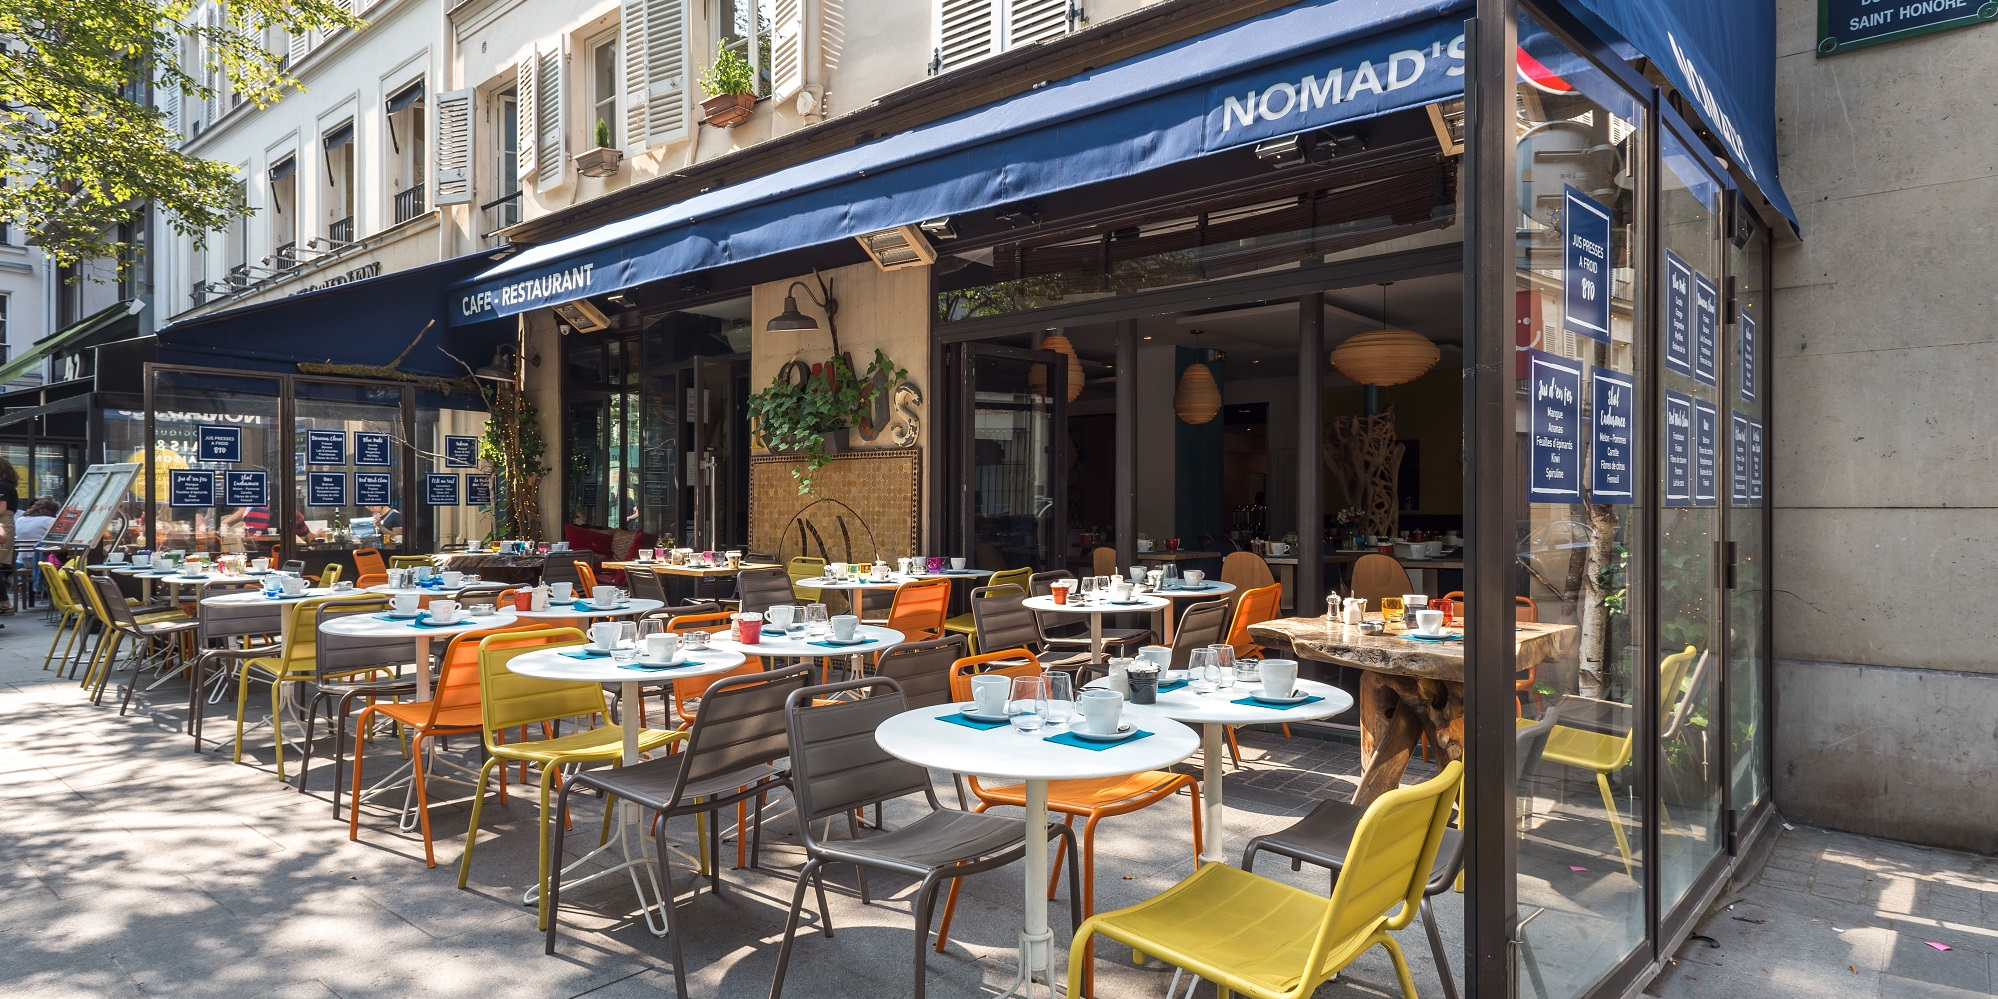 Brunch Nomad's (75001 Paris)